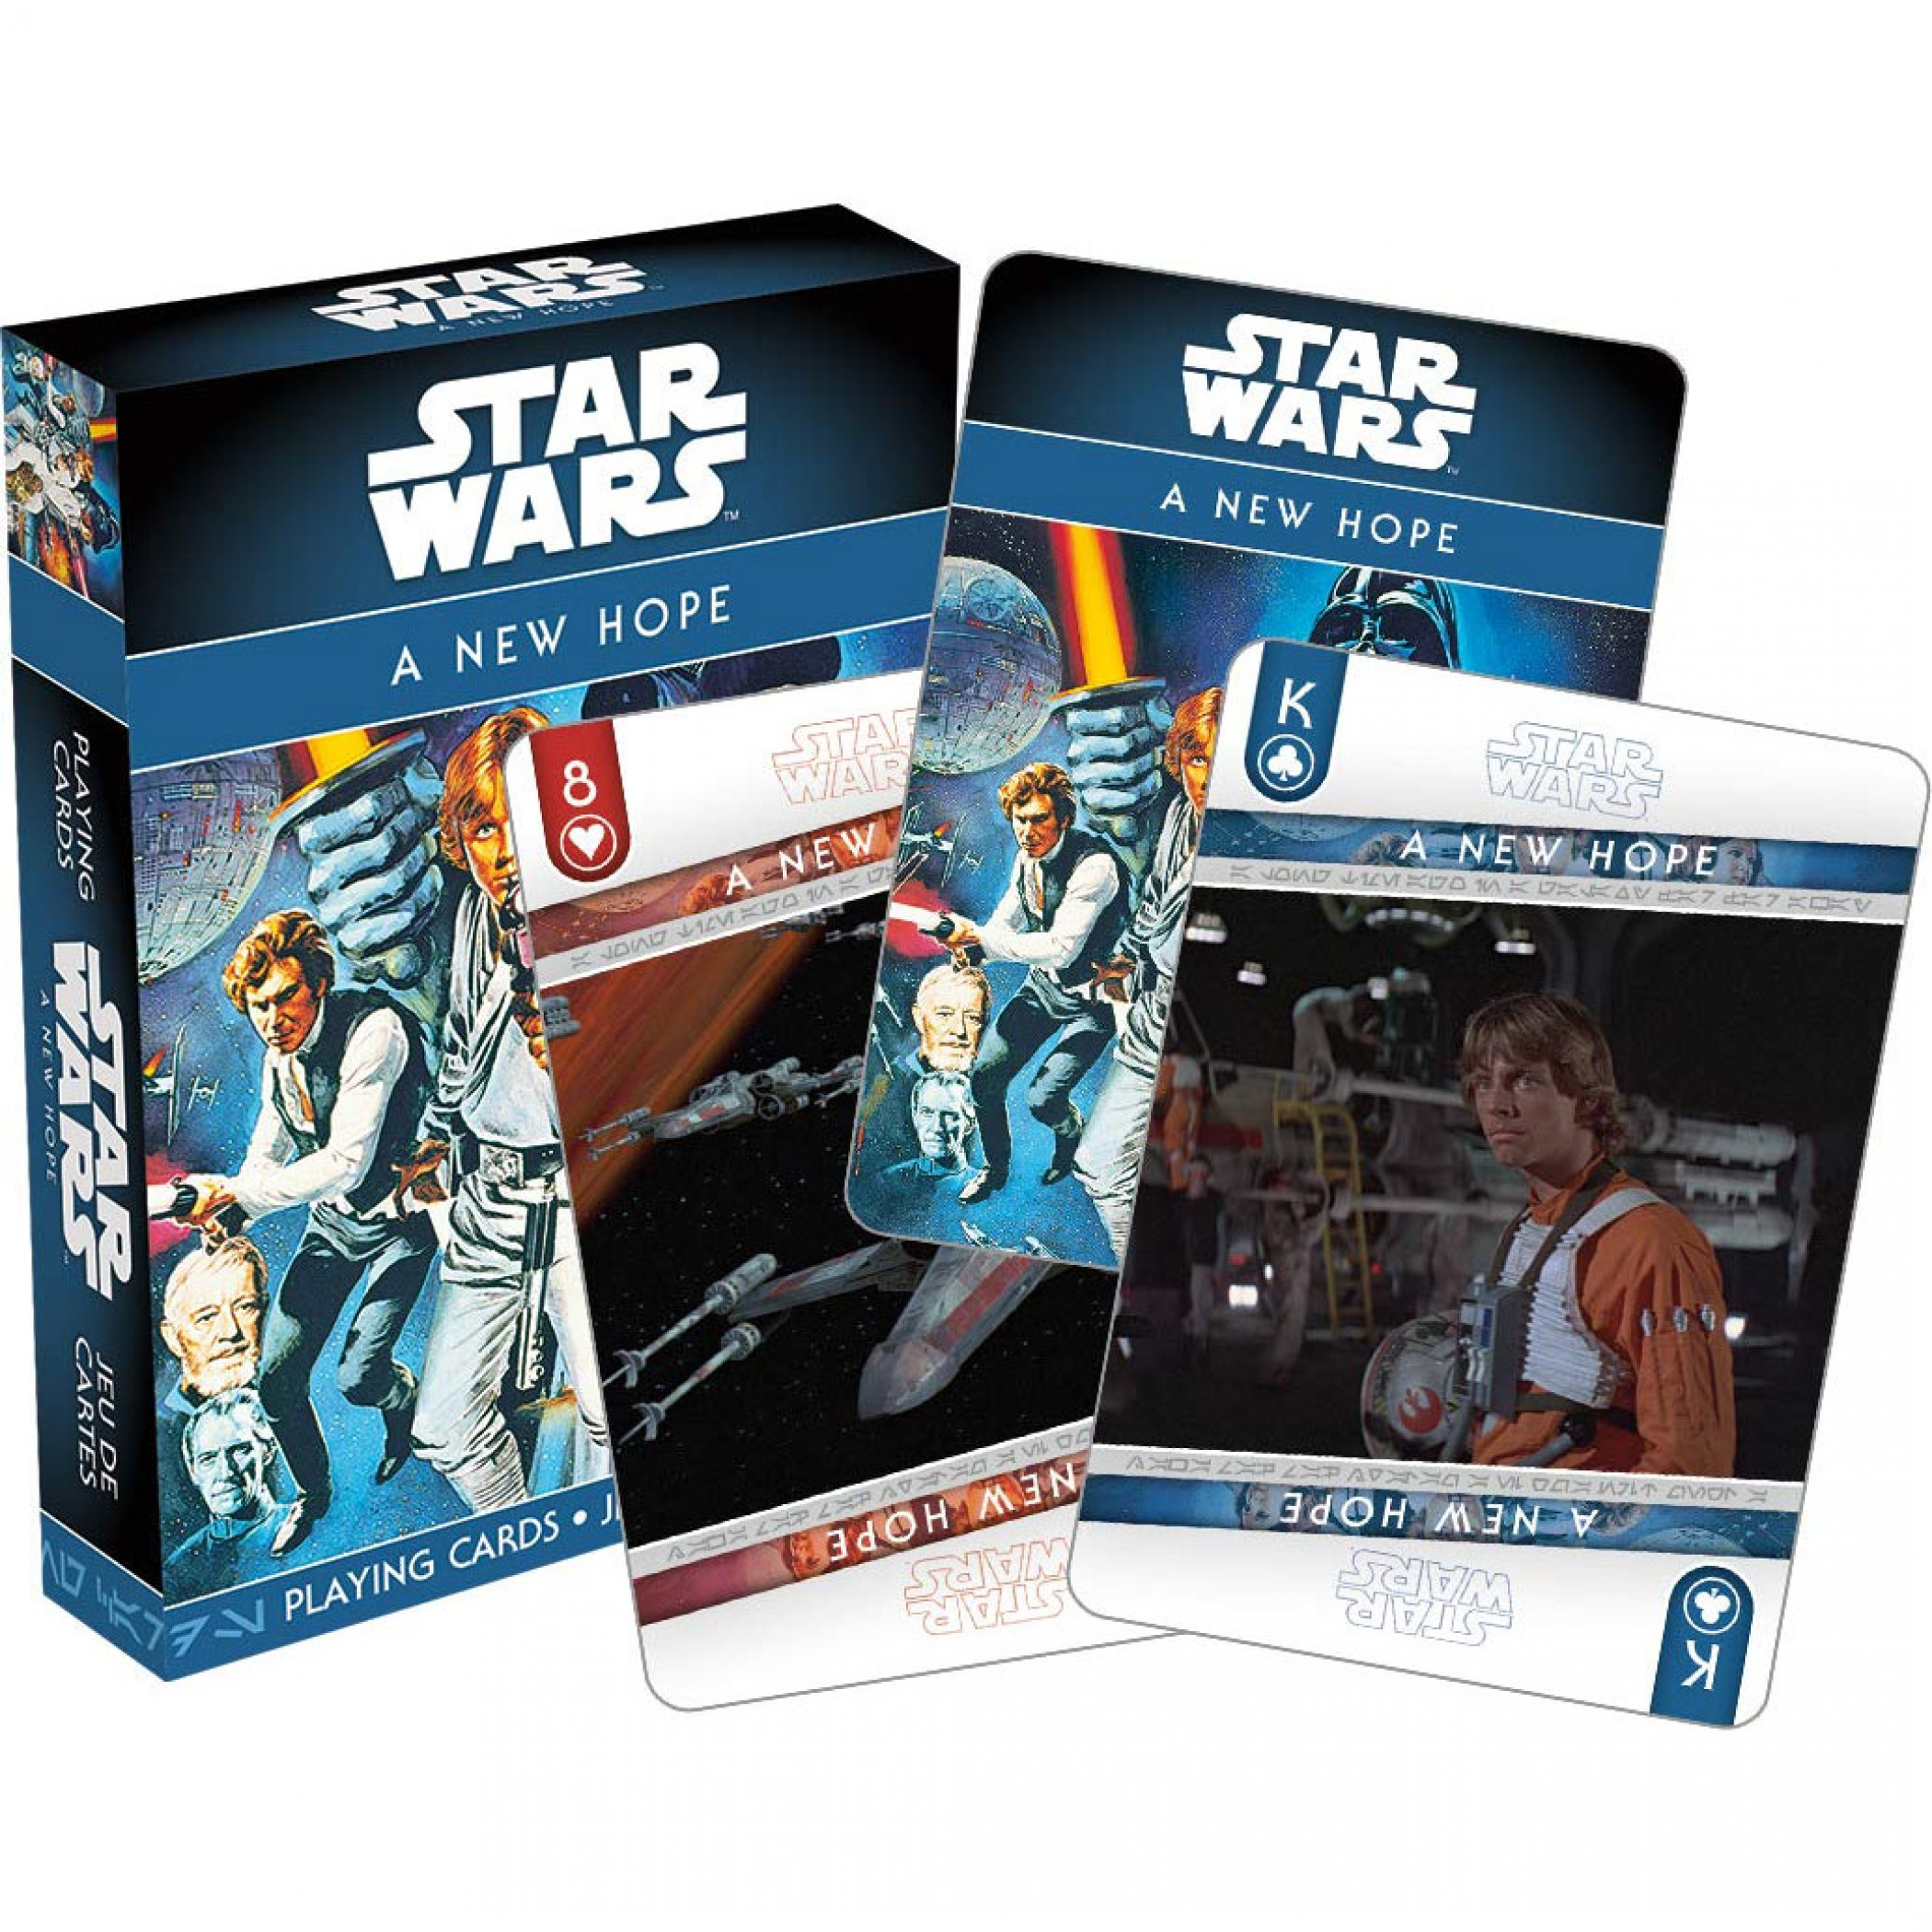 Star Wars Episode Iv A New Hope Playing Cards